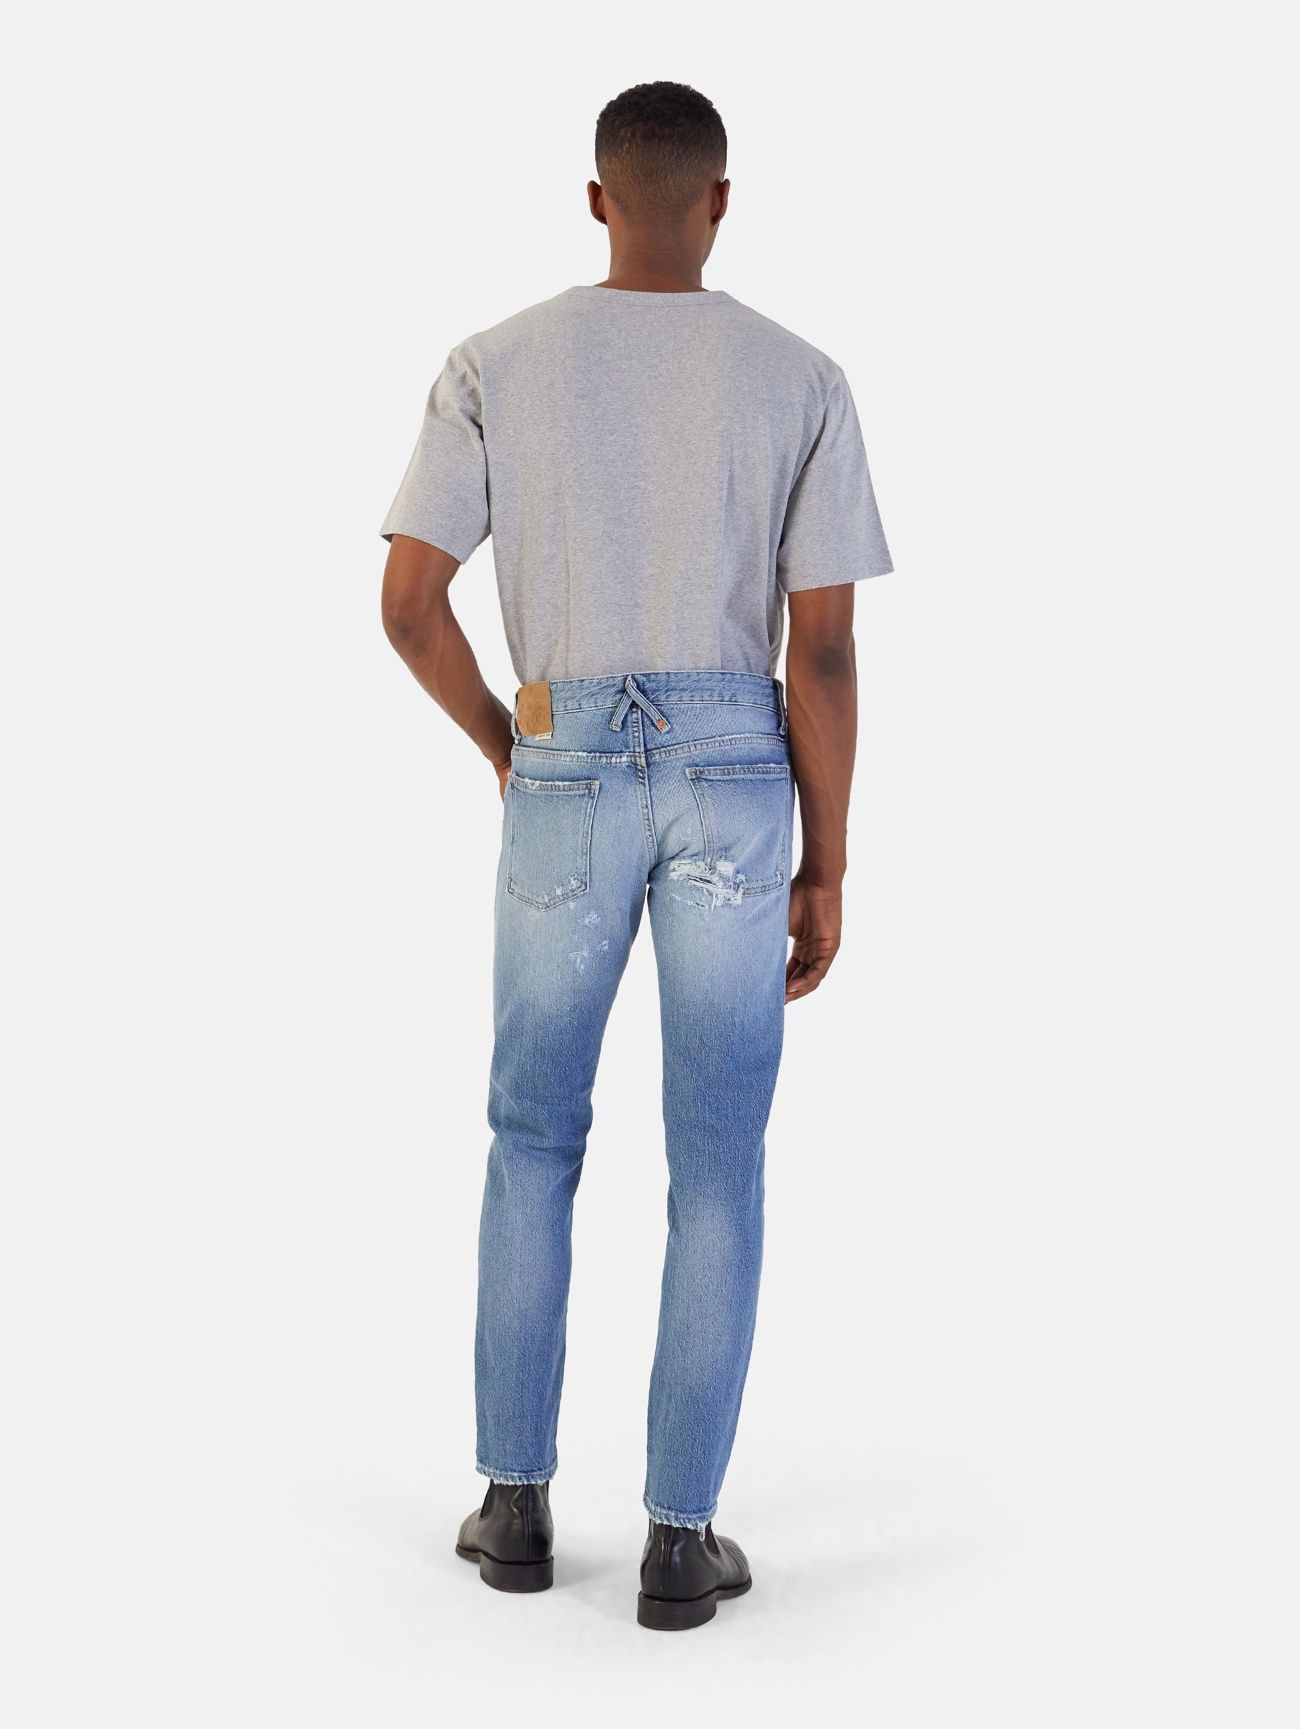 BONE COMFORT SKINNY HAND MADE DESTROYED AND REPAIRED BLUE